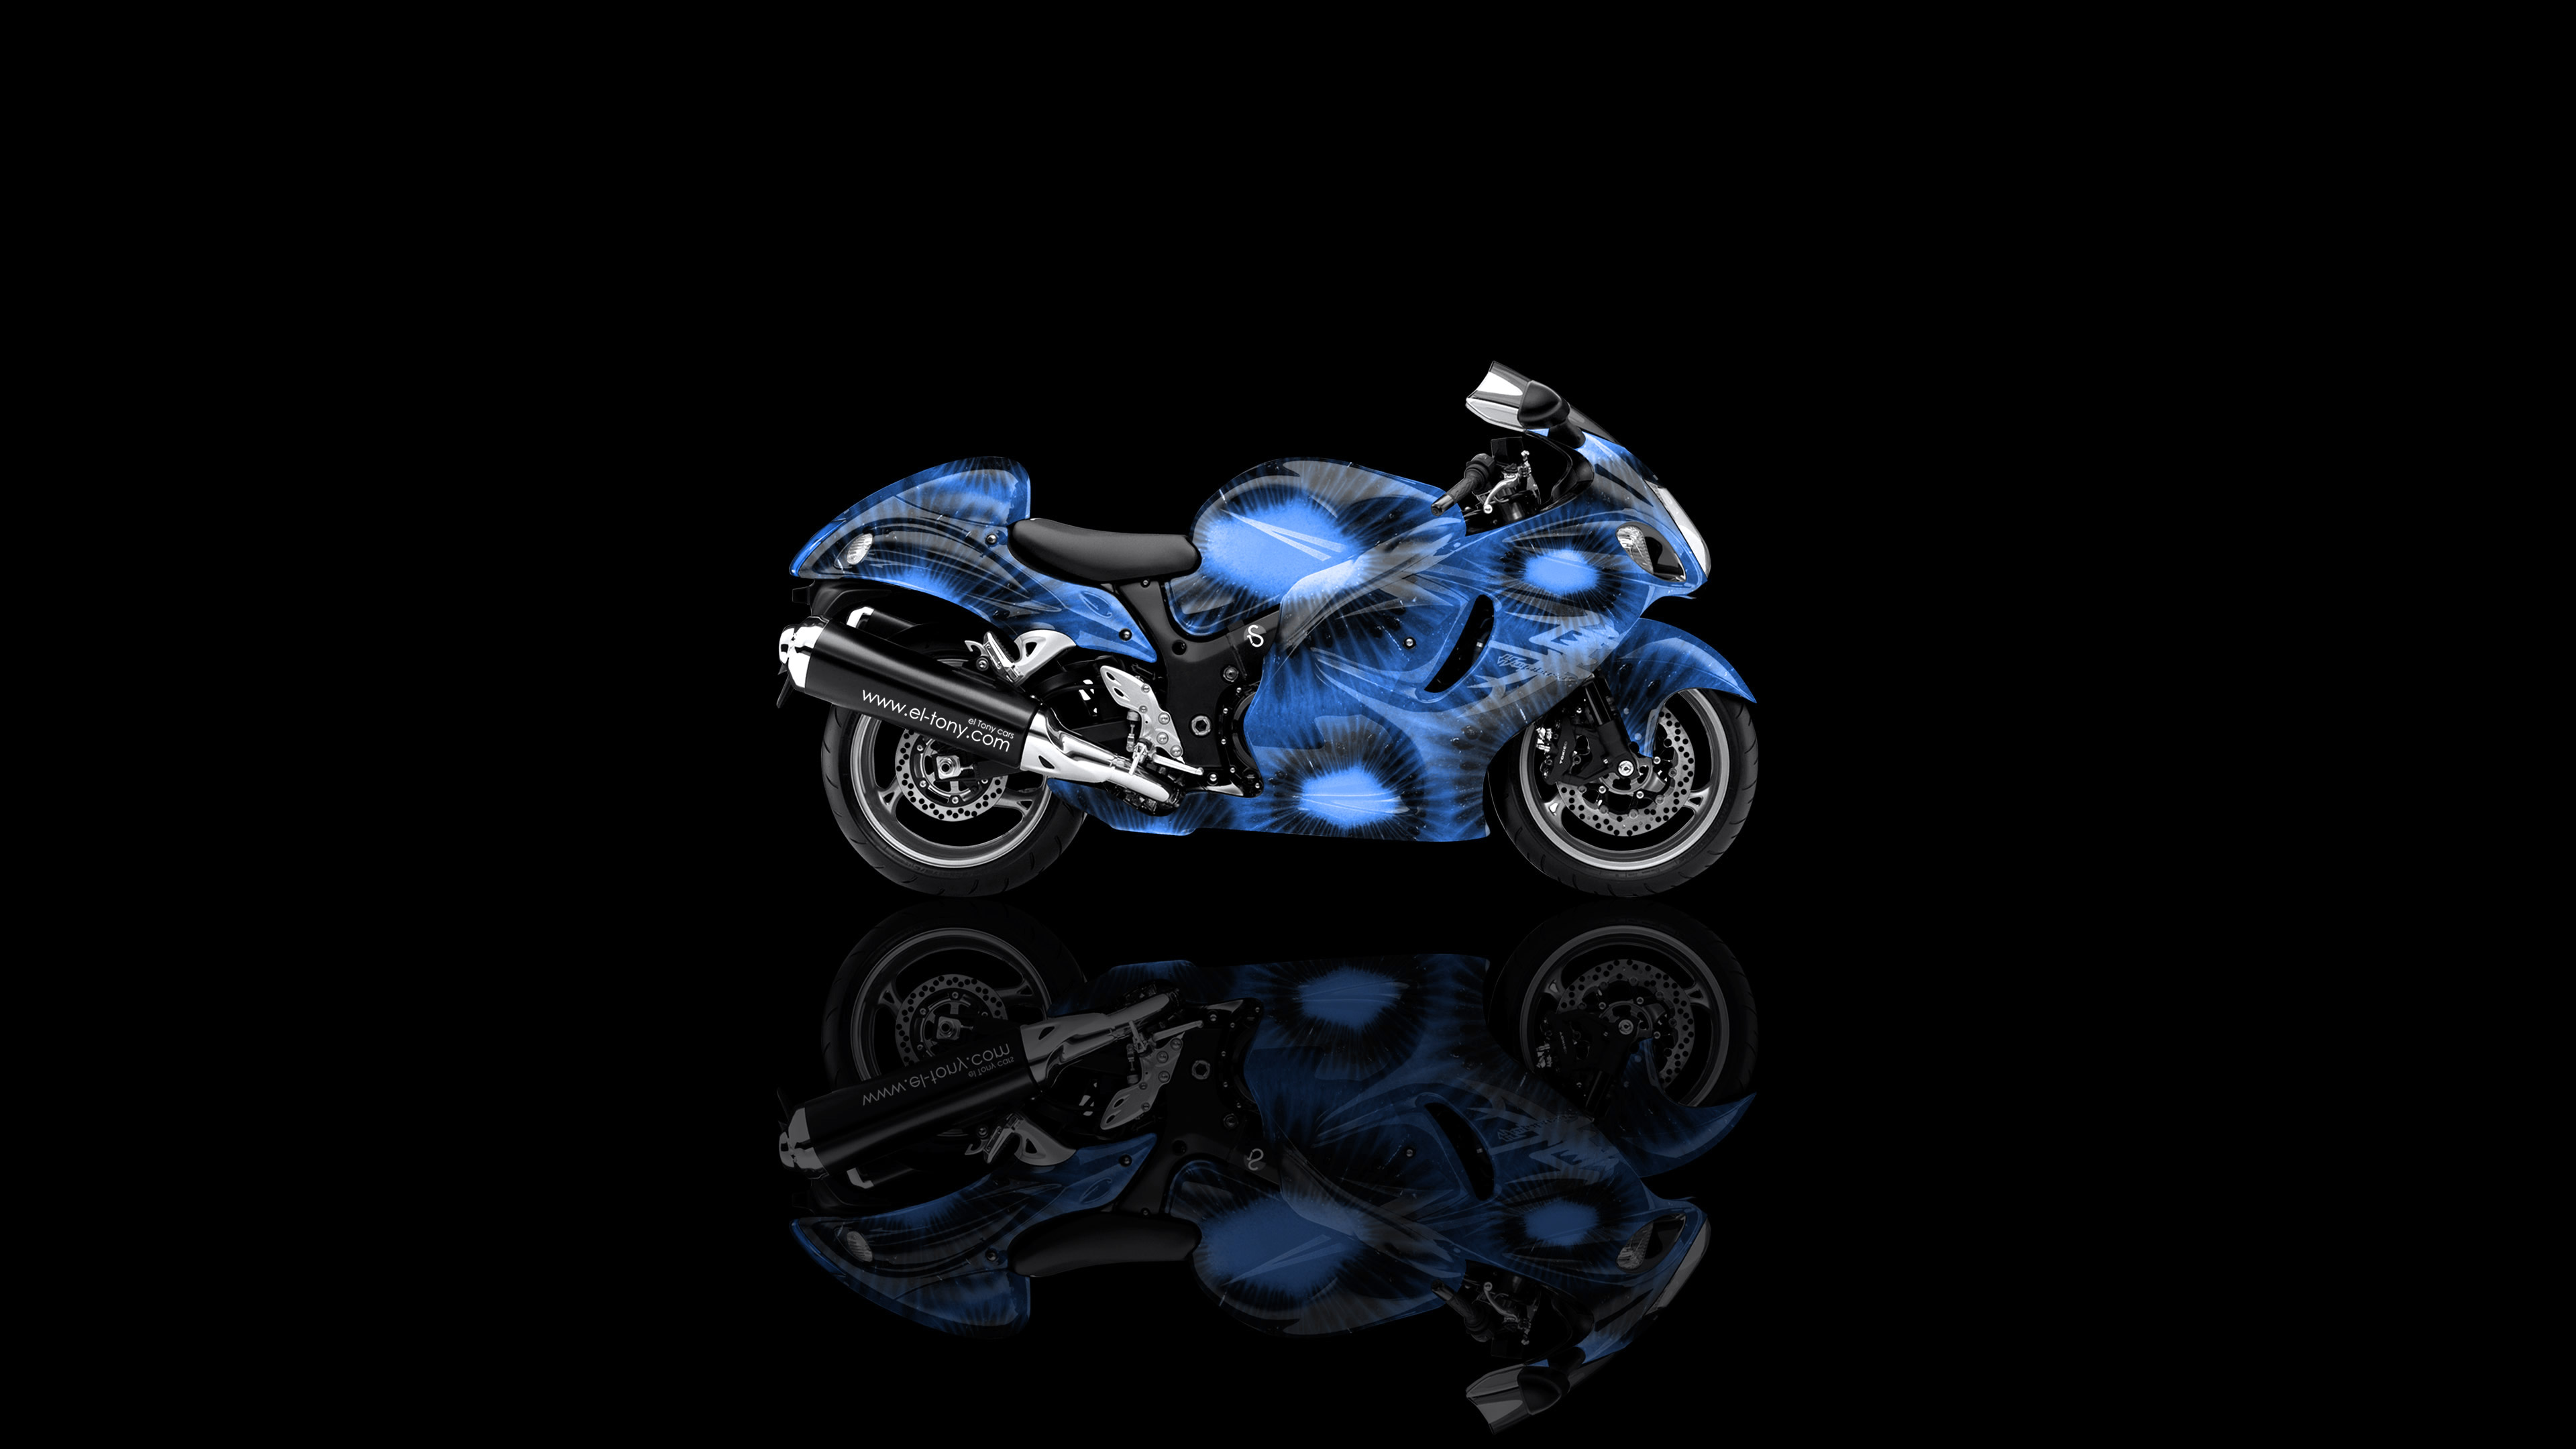 4k Suzuki Hayabusa Side Kiwi Aerography Bike 2014 El Tony